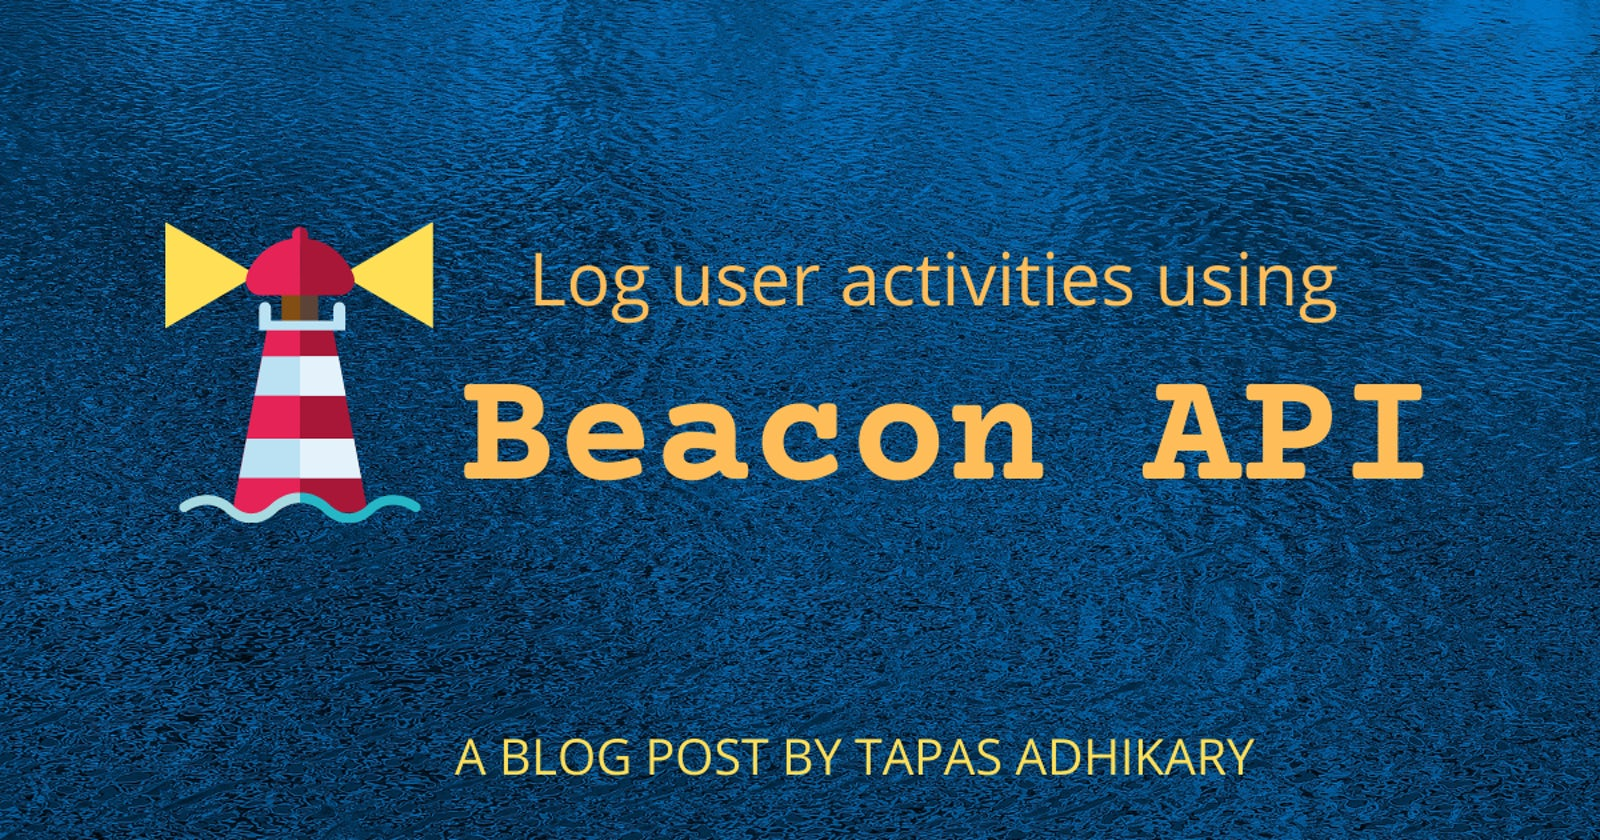 How to log user activities using the Beacon Web API?